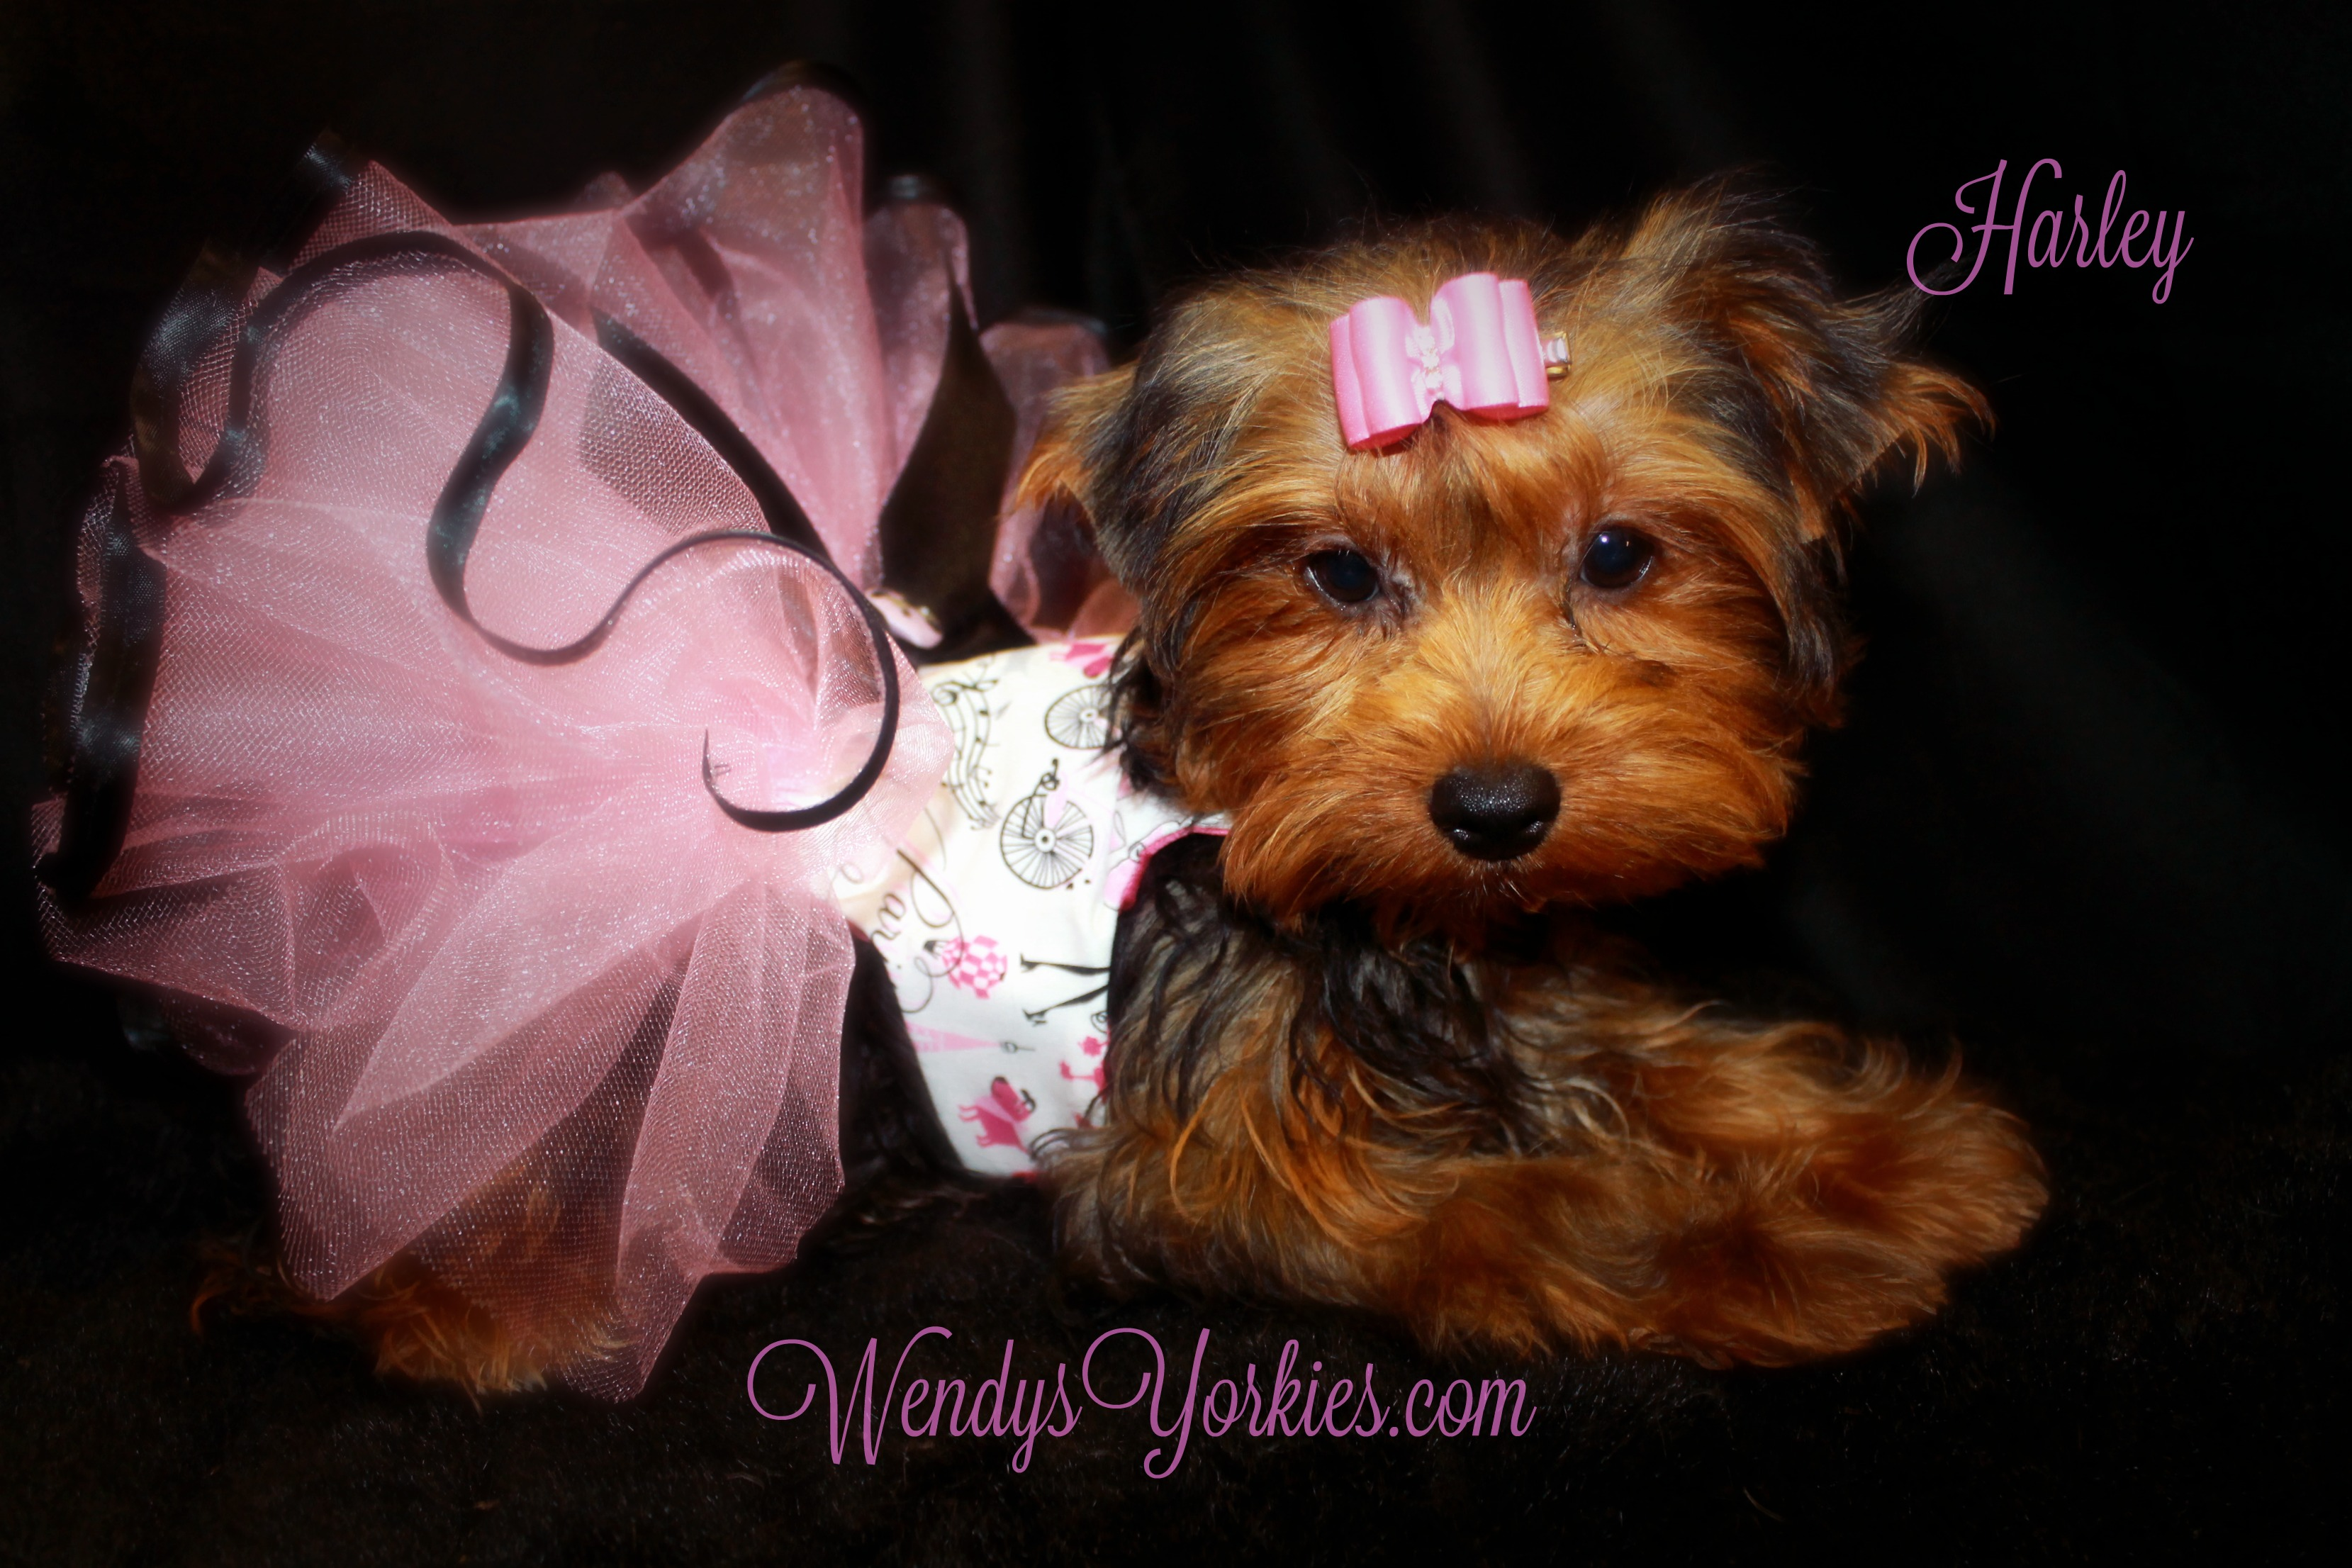 WendysYorkies.com, Harley, Yorkie puppy breeder in Texas, Yorkie puppies for sale